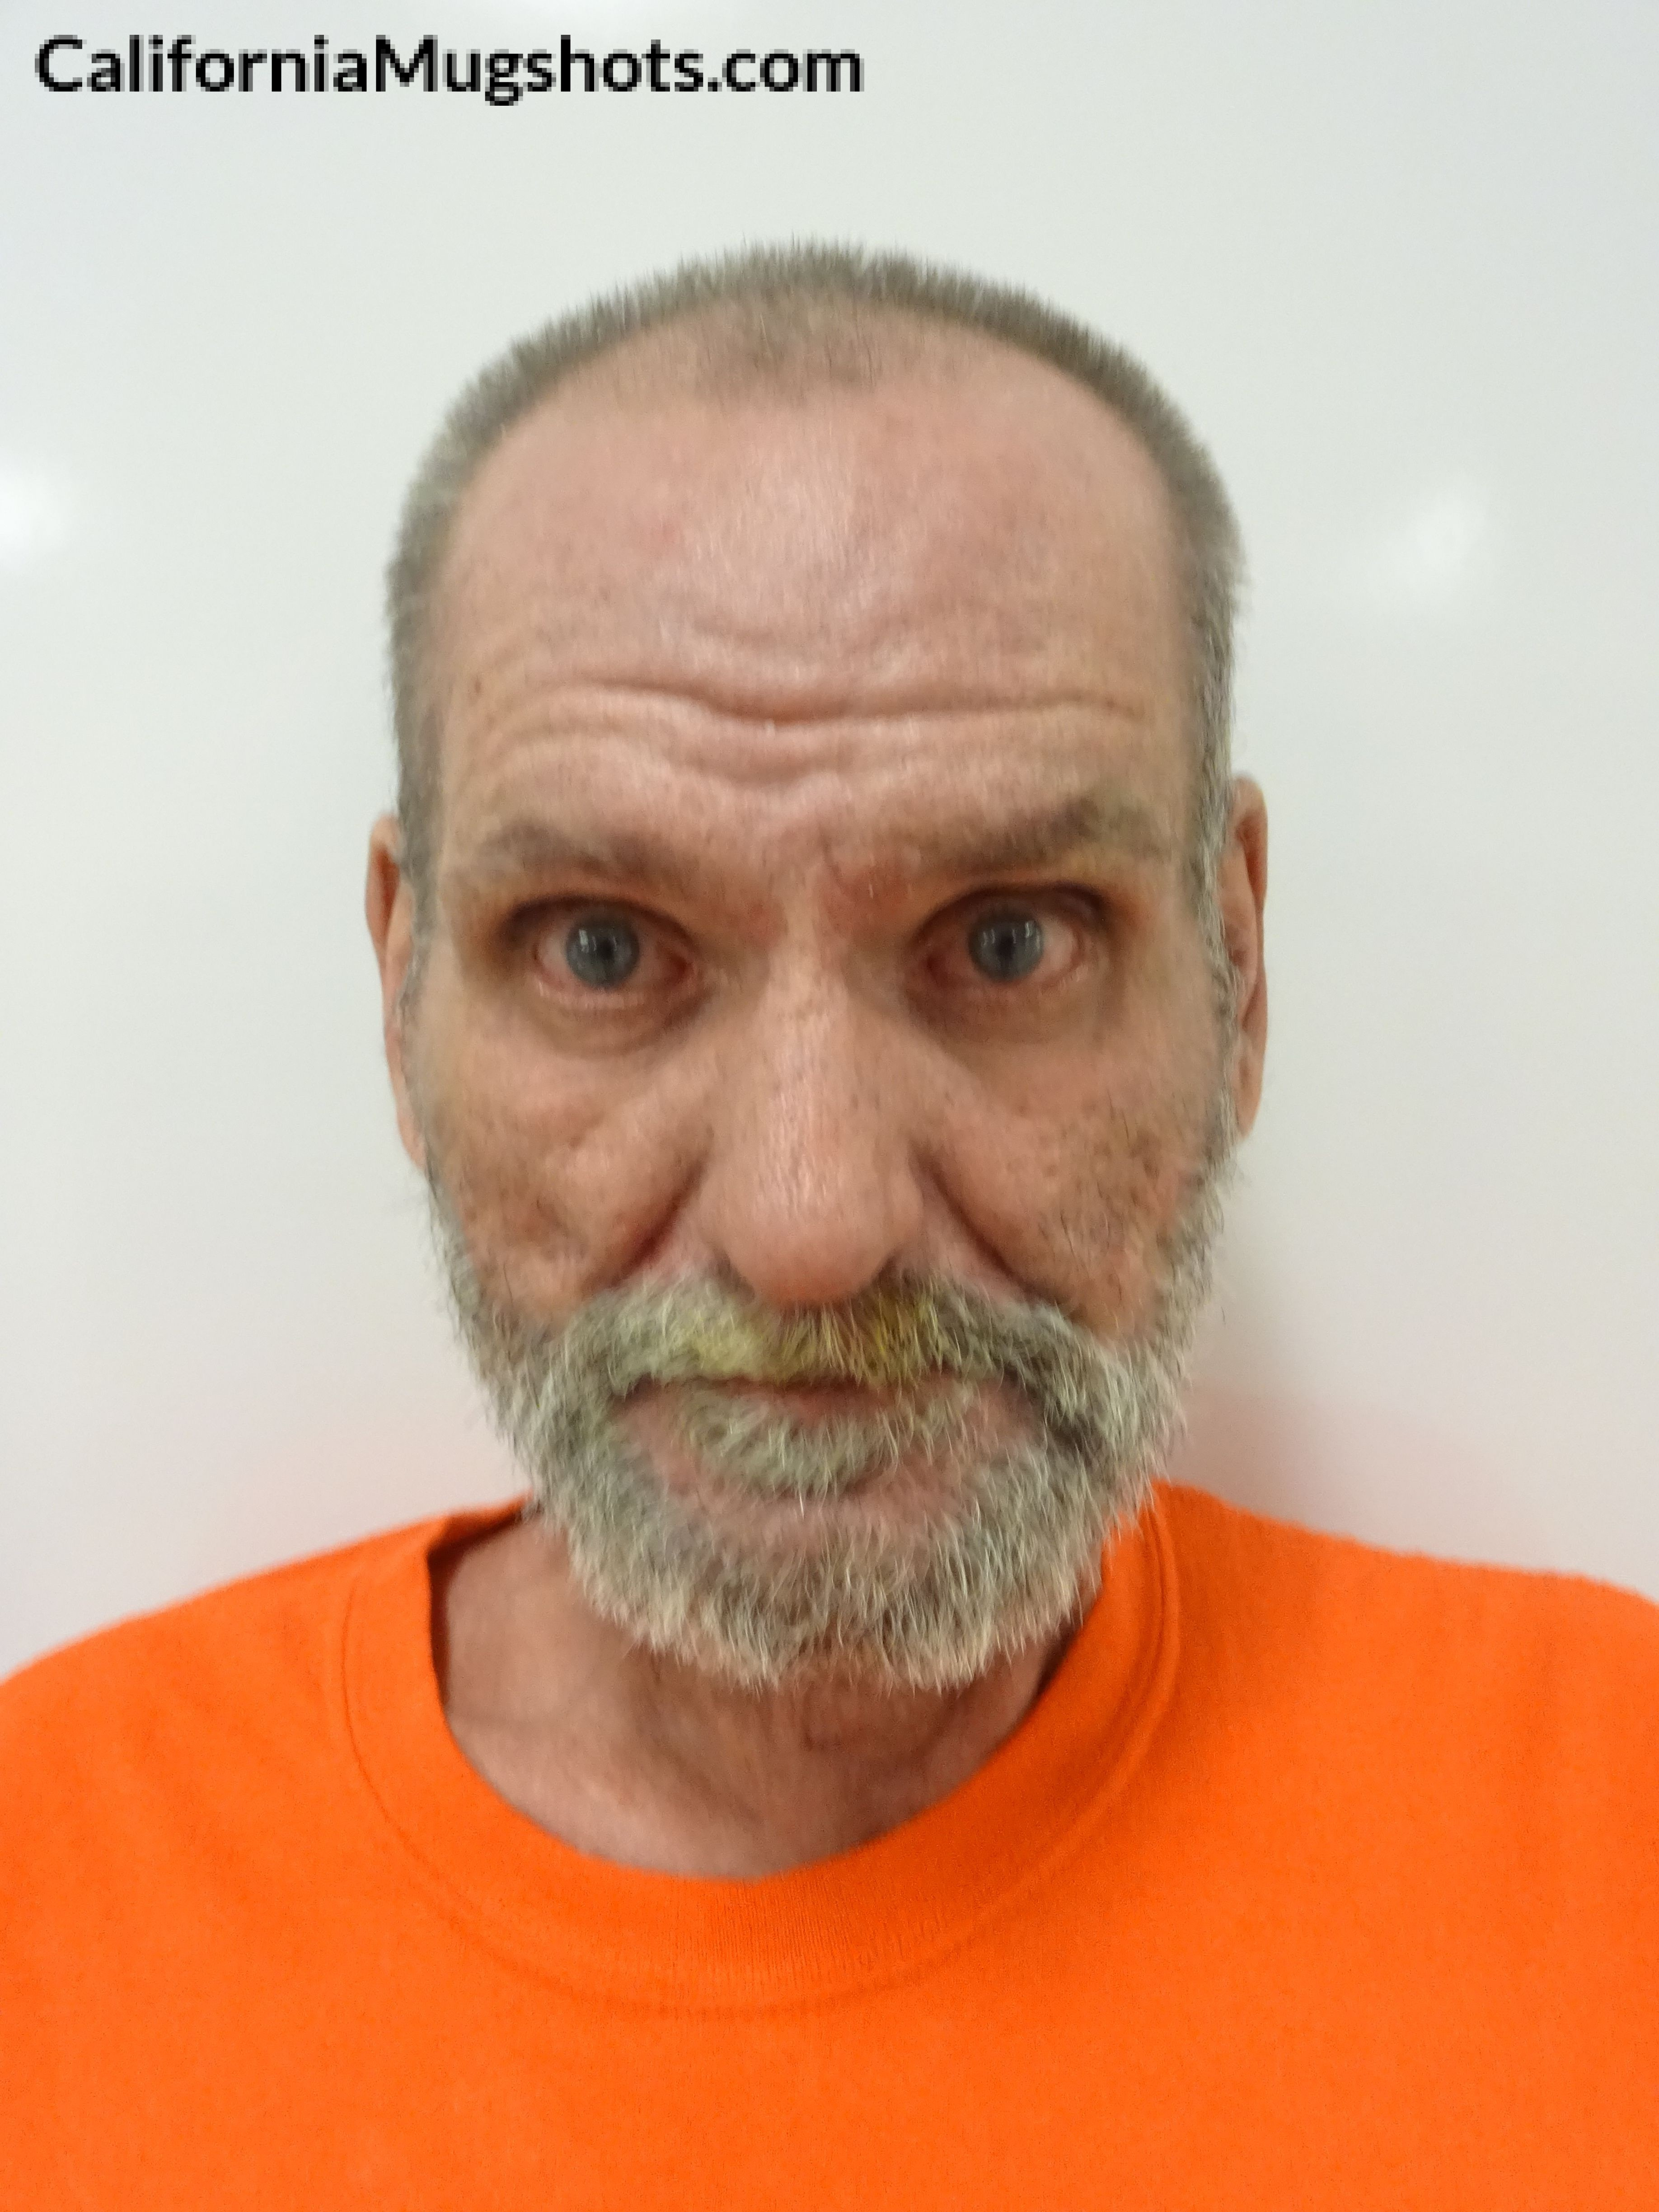 Woodrow Richard Stover arrested in Lake County,CA